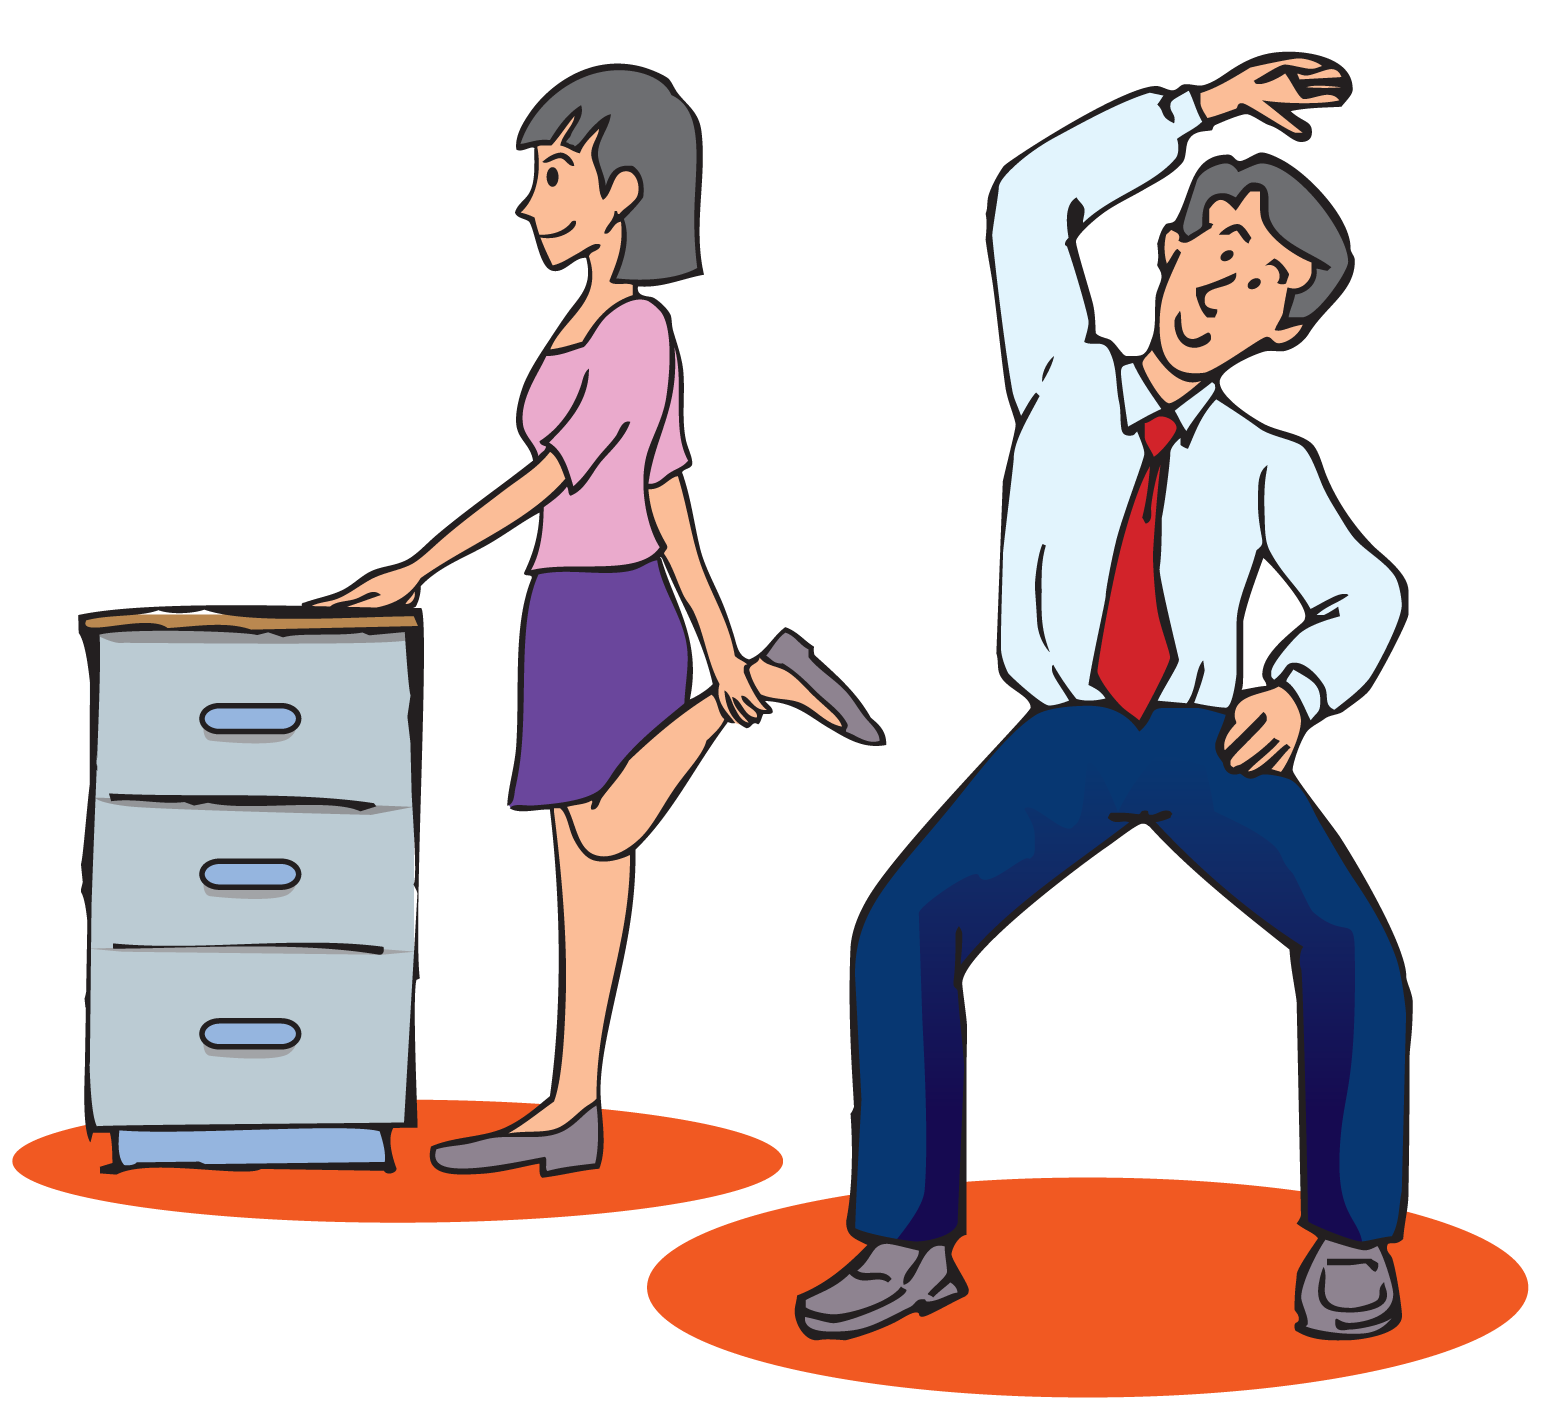 Leisure and cultural services. Neighborhood clipart alibi